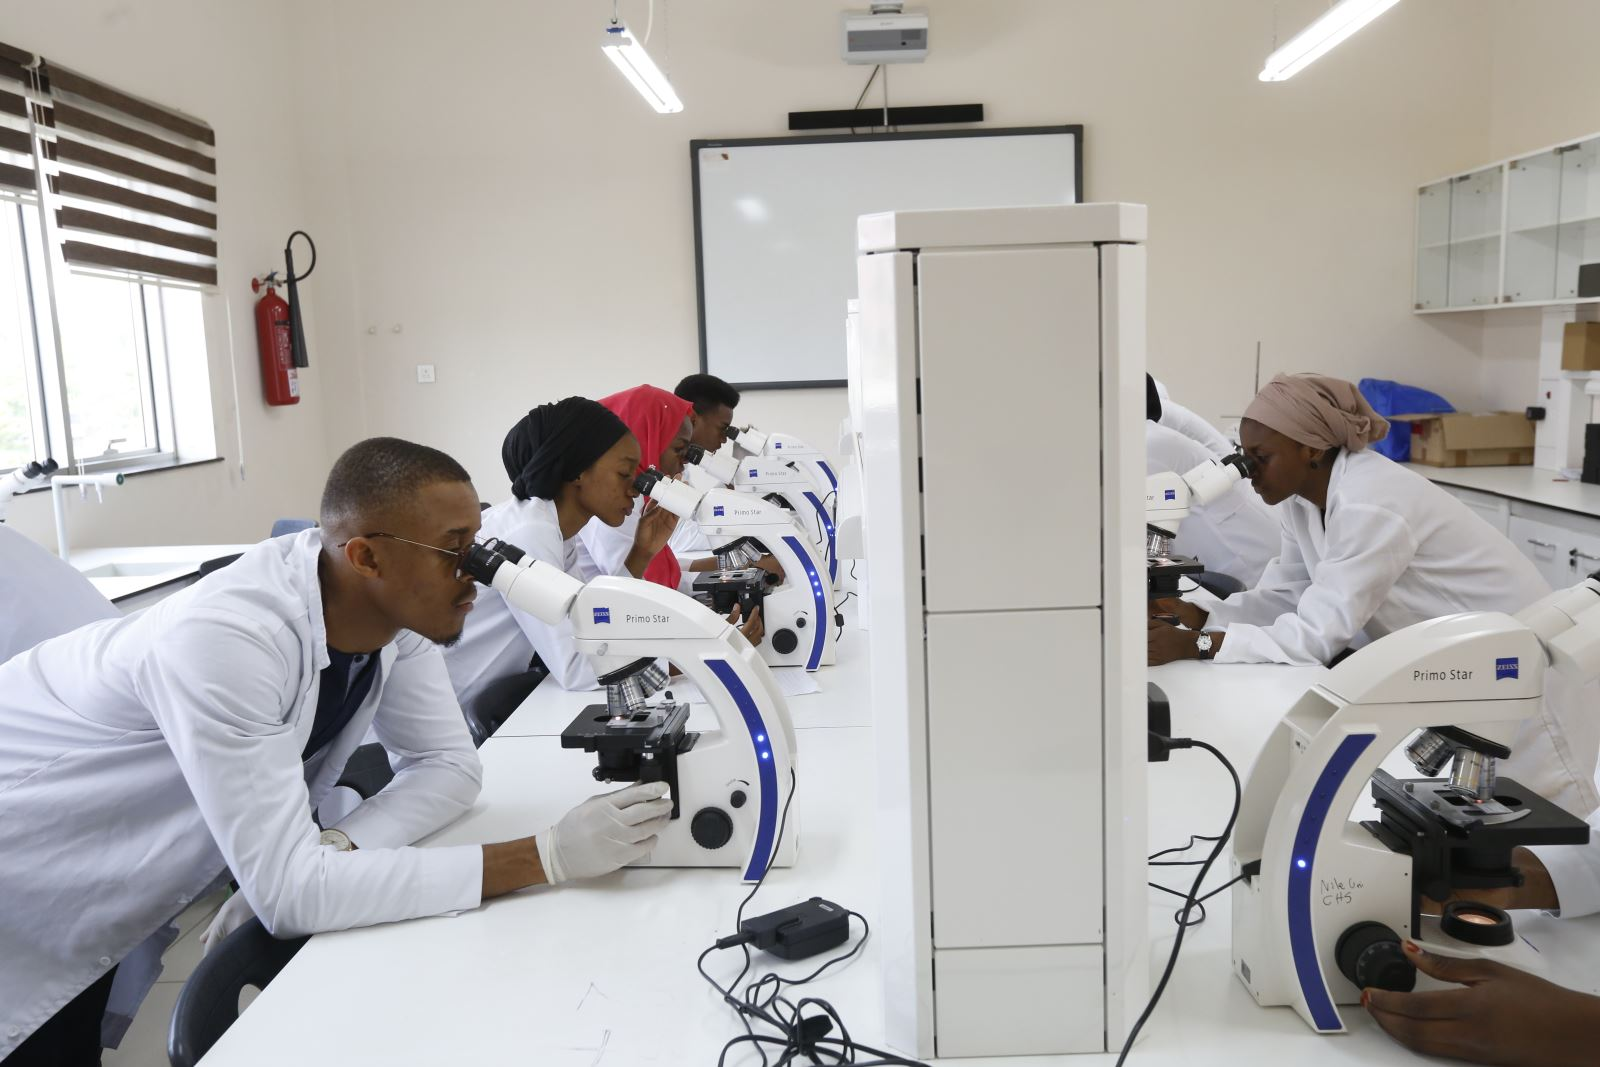 Top 10 Best Medical School In Nigeria: Medical Students of Nile University are seen in the lab in this photo by Nile University via Google